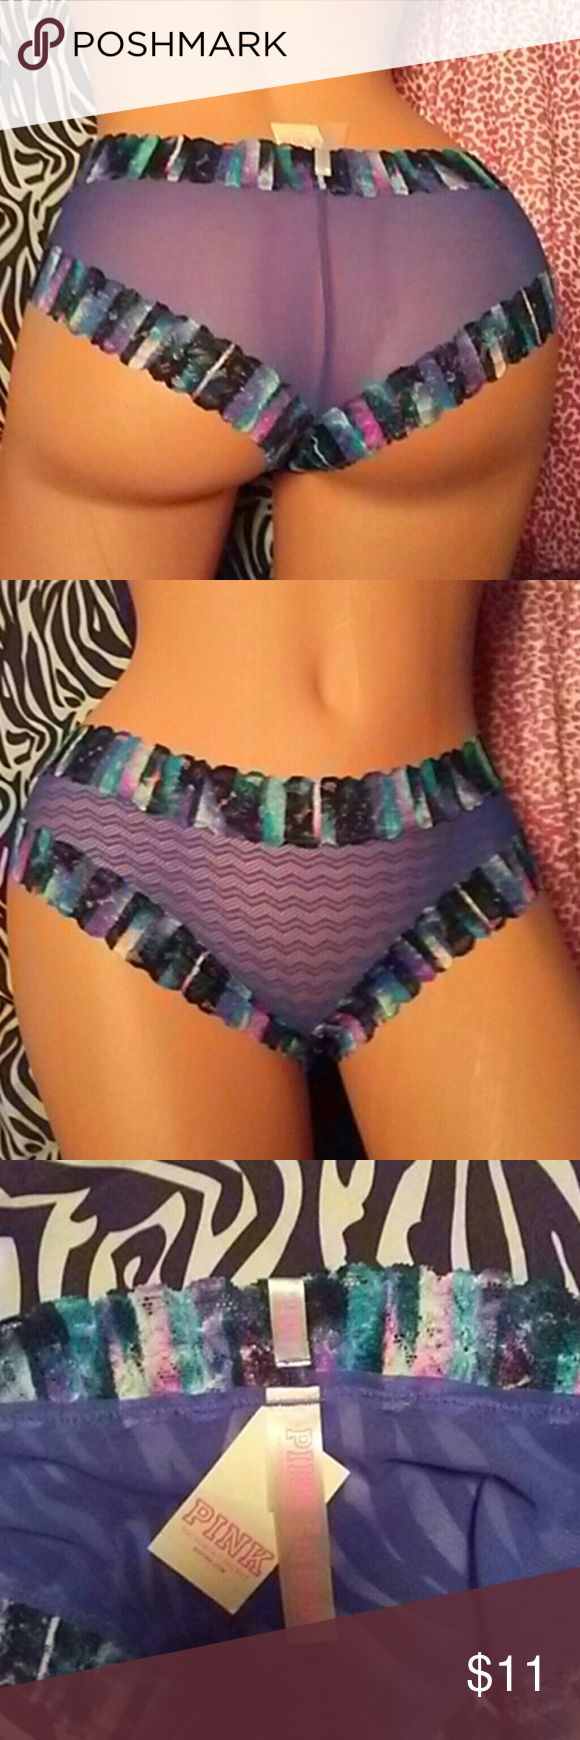 💥SALE💥NWT💜PINK Sheer & Lace panties SALE PRICE IS FIRM 💞PROCEEDS TO HAVEN HOUSE FOR BATTERED WOMEN❗ NO TRADES❗ PINK Sheer and zig-zag mesh panties with multi colored lace trim. Style is low rise cheekster size medium. 💰Bundle 3 or more of the items out of My Closet, and save 25%!  THANK YOU 💕🙋💕 PINK Victoria's Secret Intimates & Sleepwear Panties